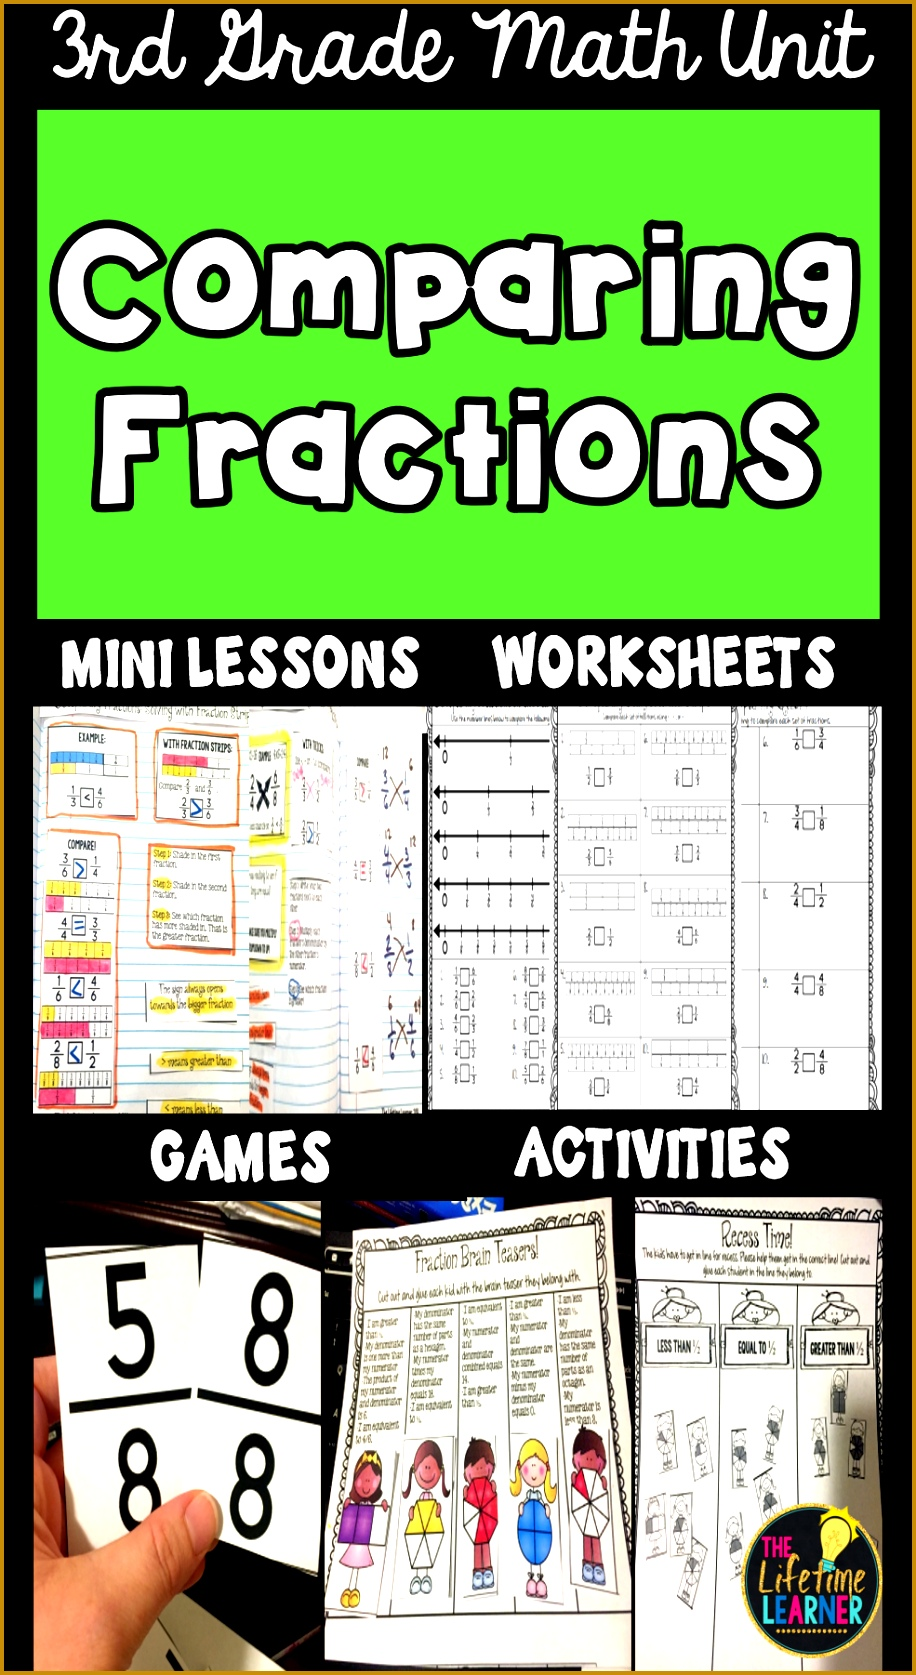 paring Fractions Fraction Worksheets Activities Games 9161675